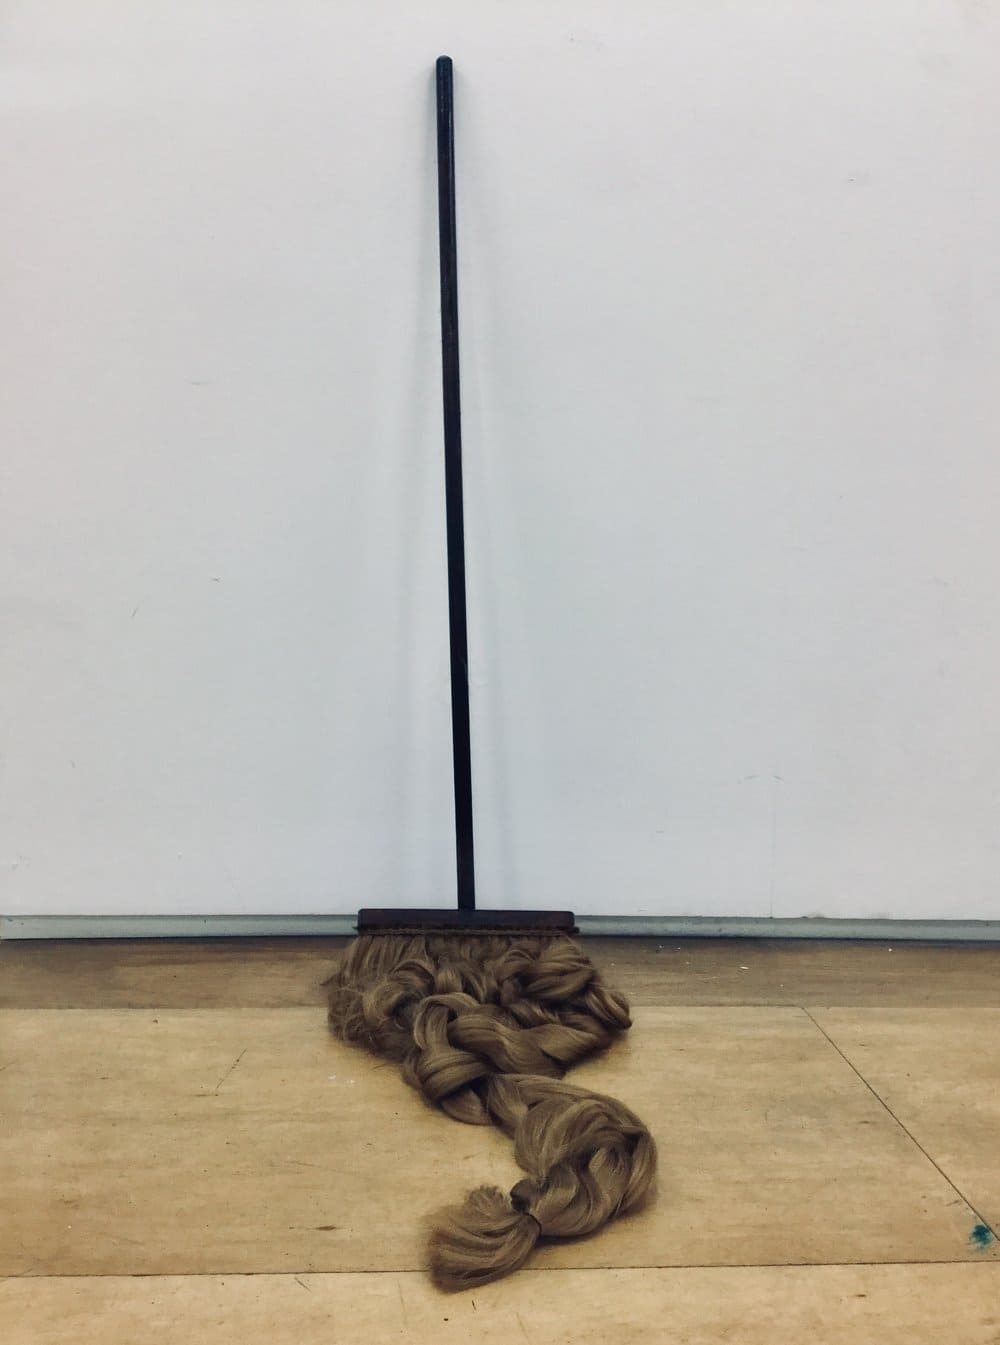 Camilla Hanney,  Domestic Pleasure,  2019. Broom, hair, dimensions variable. Image courtesy of the artist.